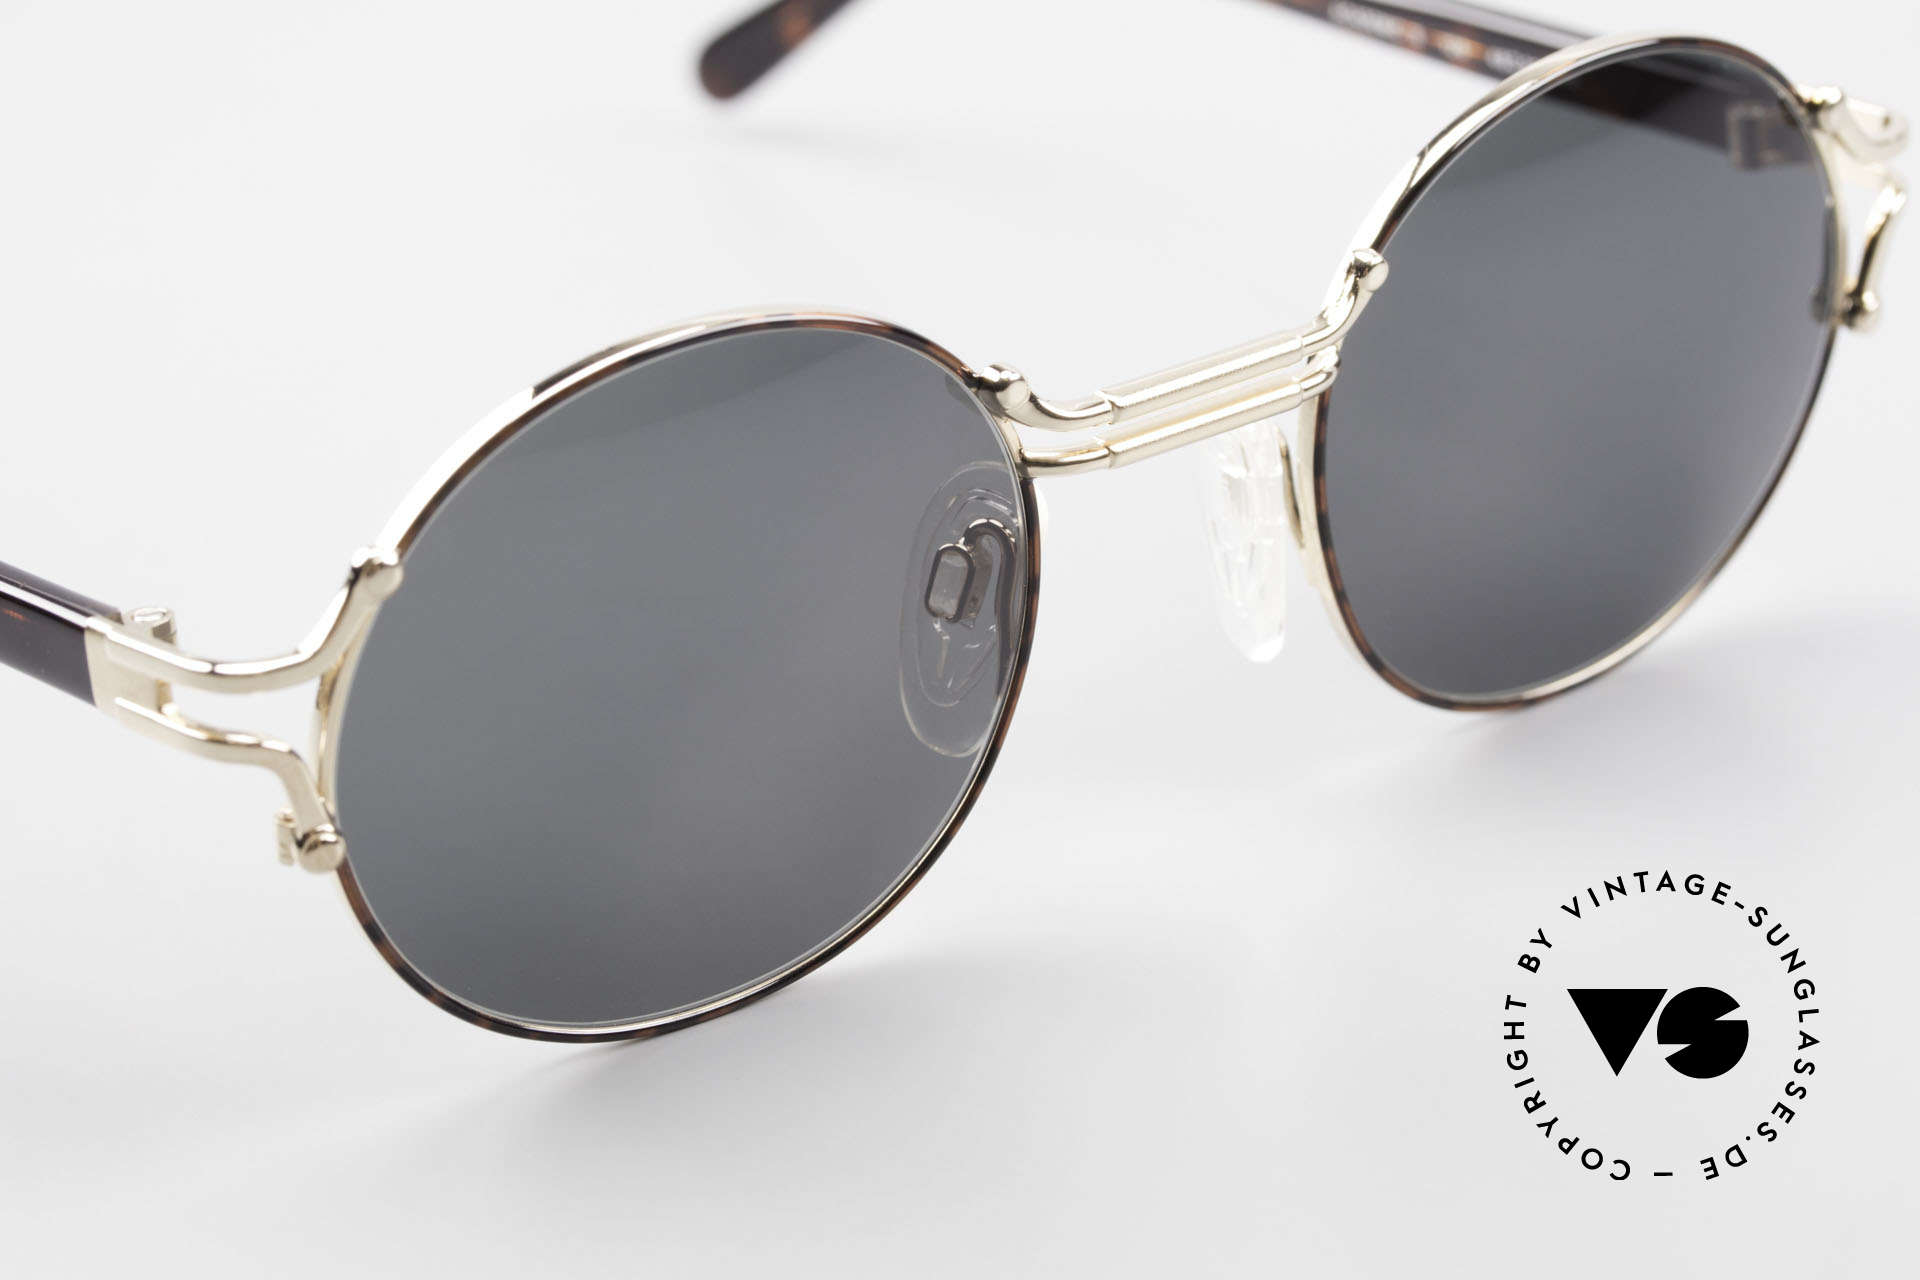 Neostyle Academic 8 Round Vintage Sunglasses 80's, never worn, NOS (like all our vintage sunnies), Made for Men and Women